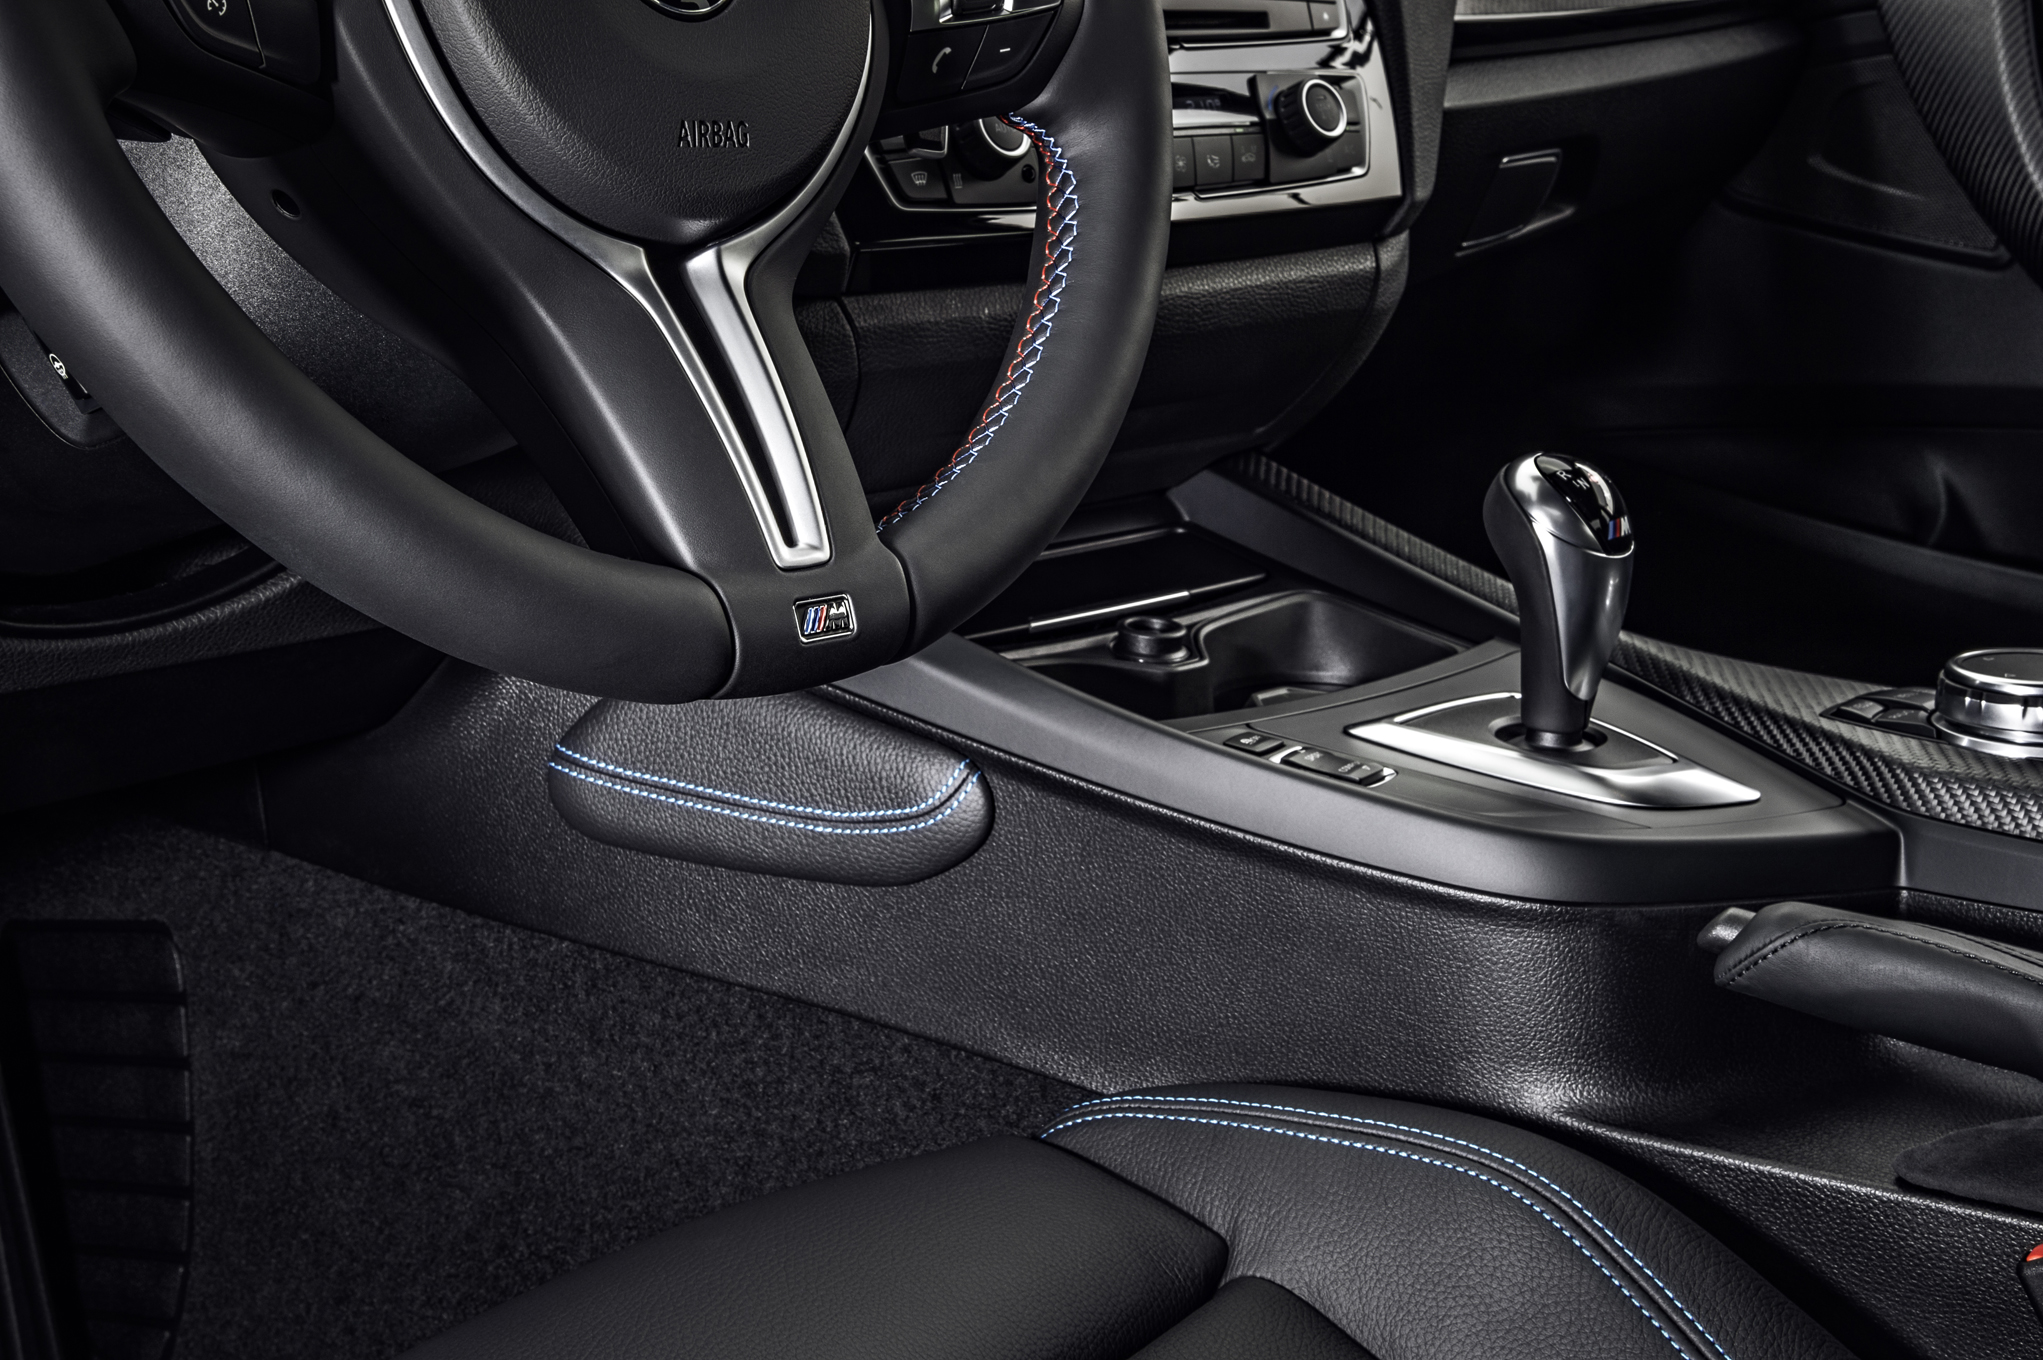 2016 BMW M2 Interior View Center Console (Photo 39 of 61)